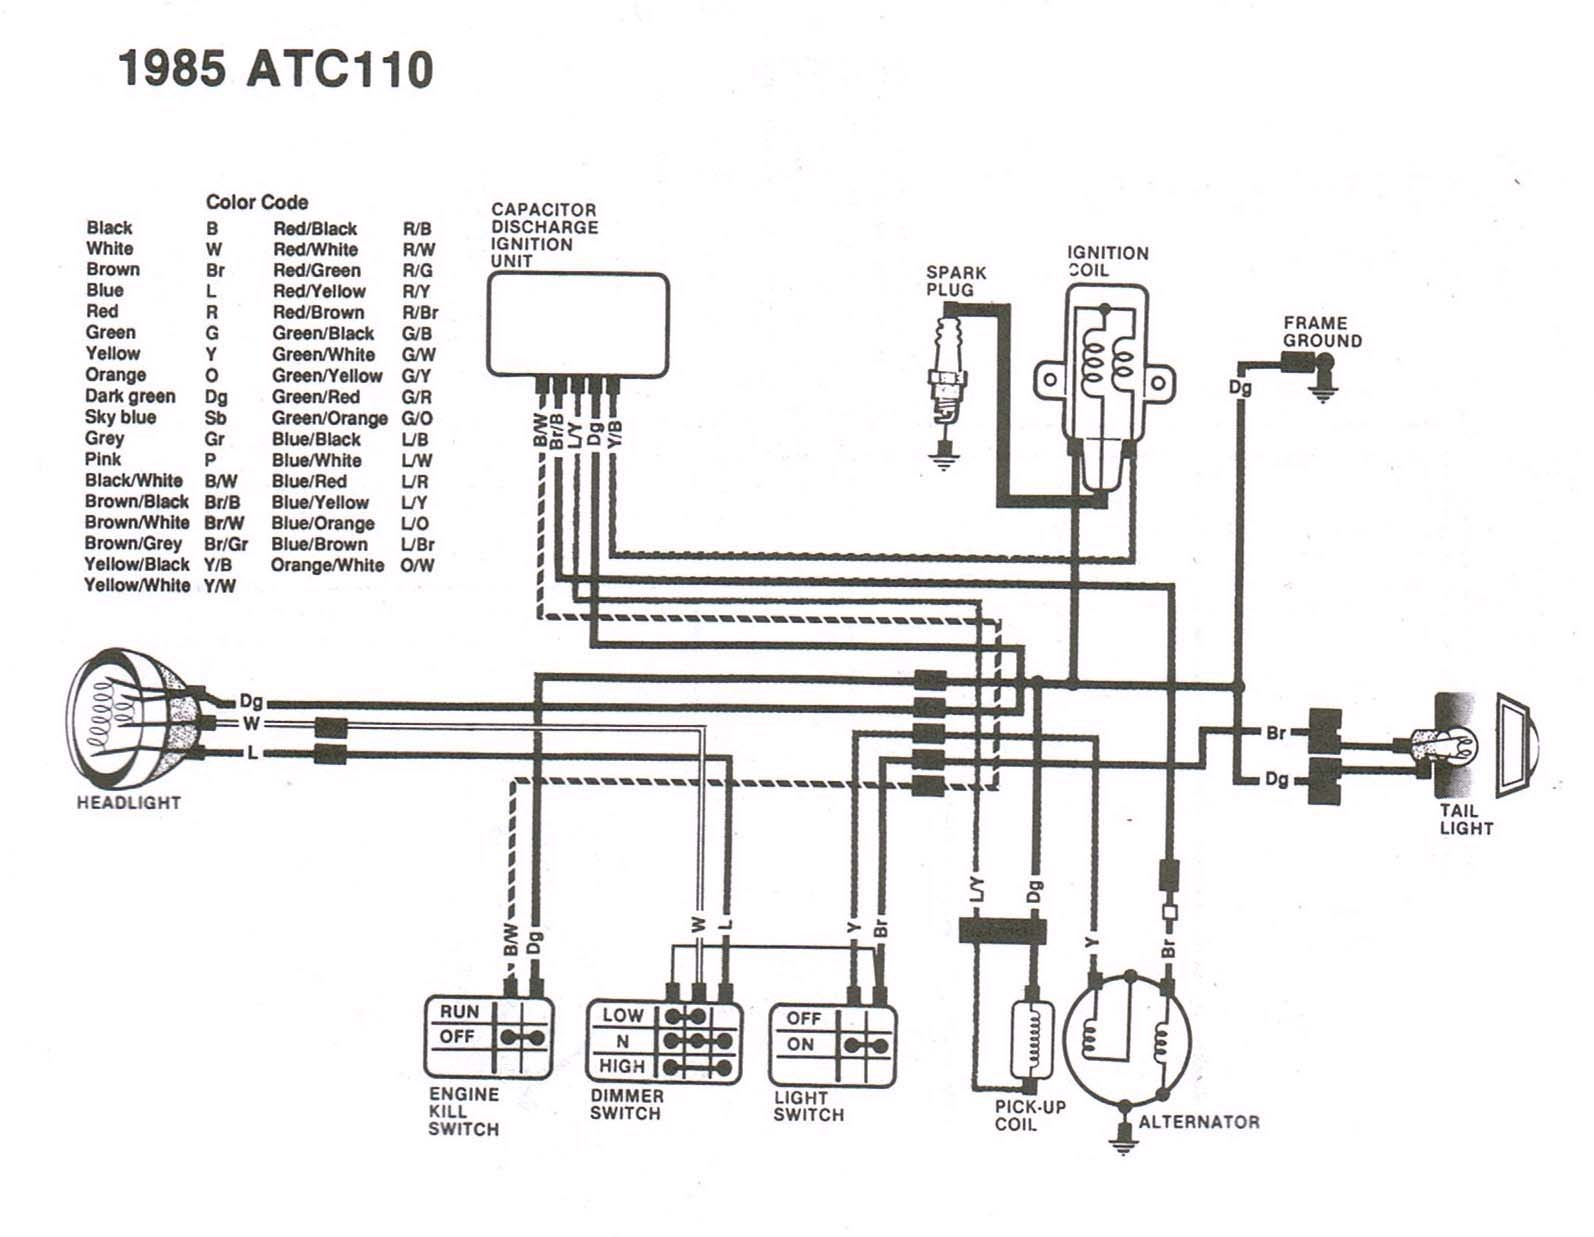 ignition switch wiring diagram 1973 dt3 yamaha motorcycle yamoto 110 atv wire    diagram    auto electrical    wiring       diagram     yamoto 110 atv wire    diagram    auto electrical    wiring       diagram